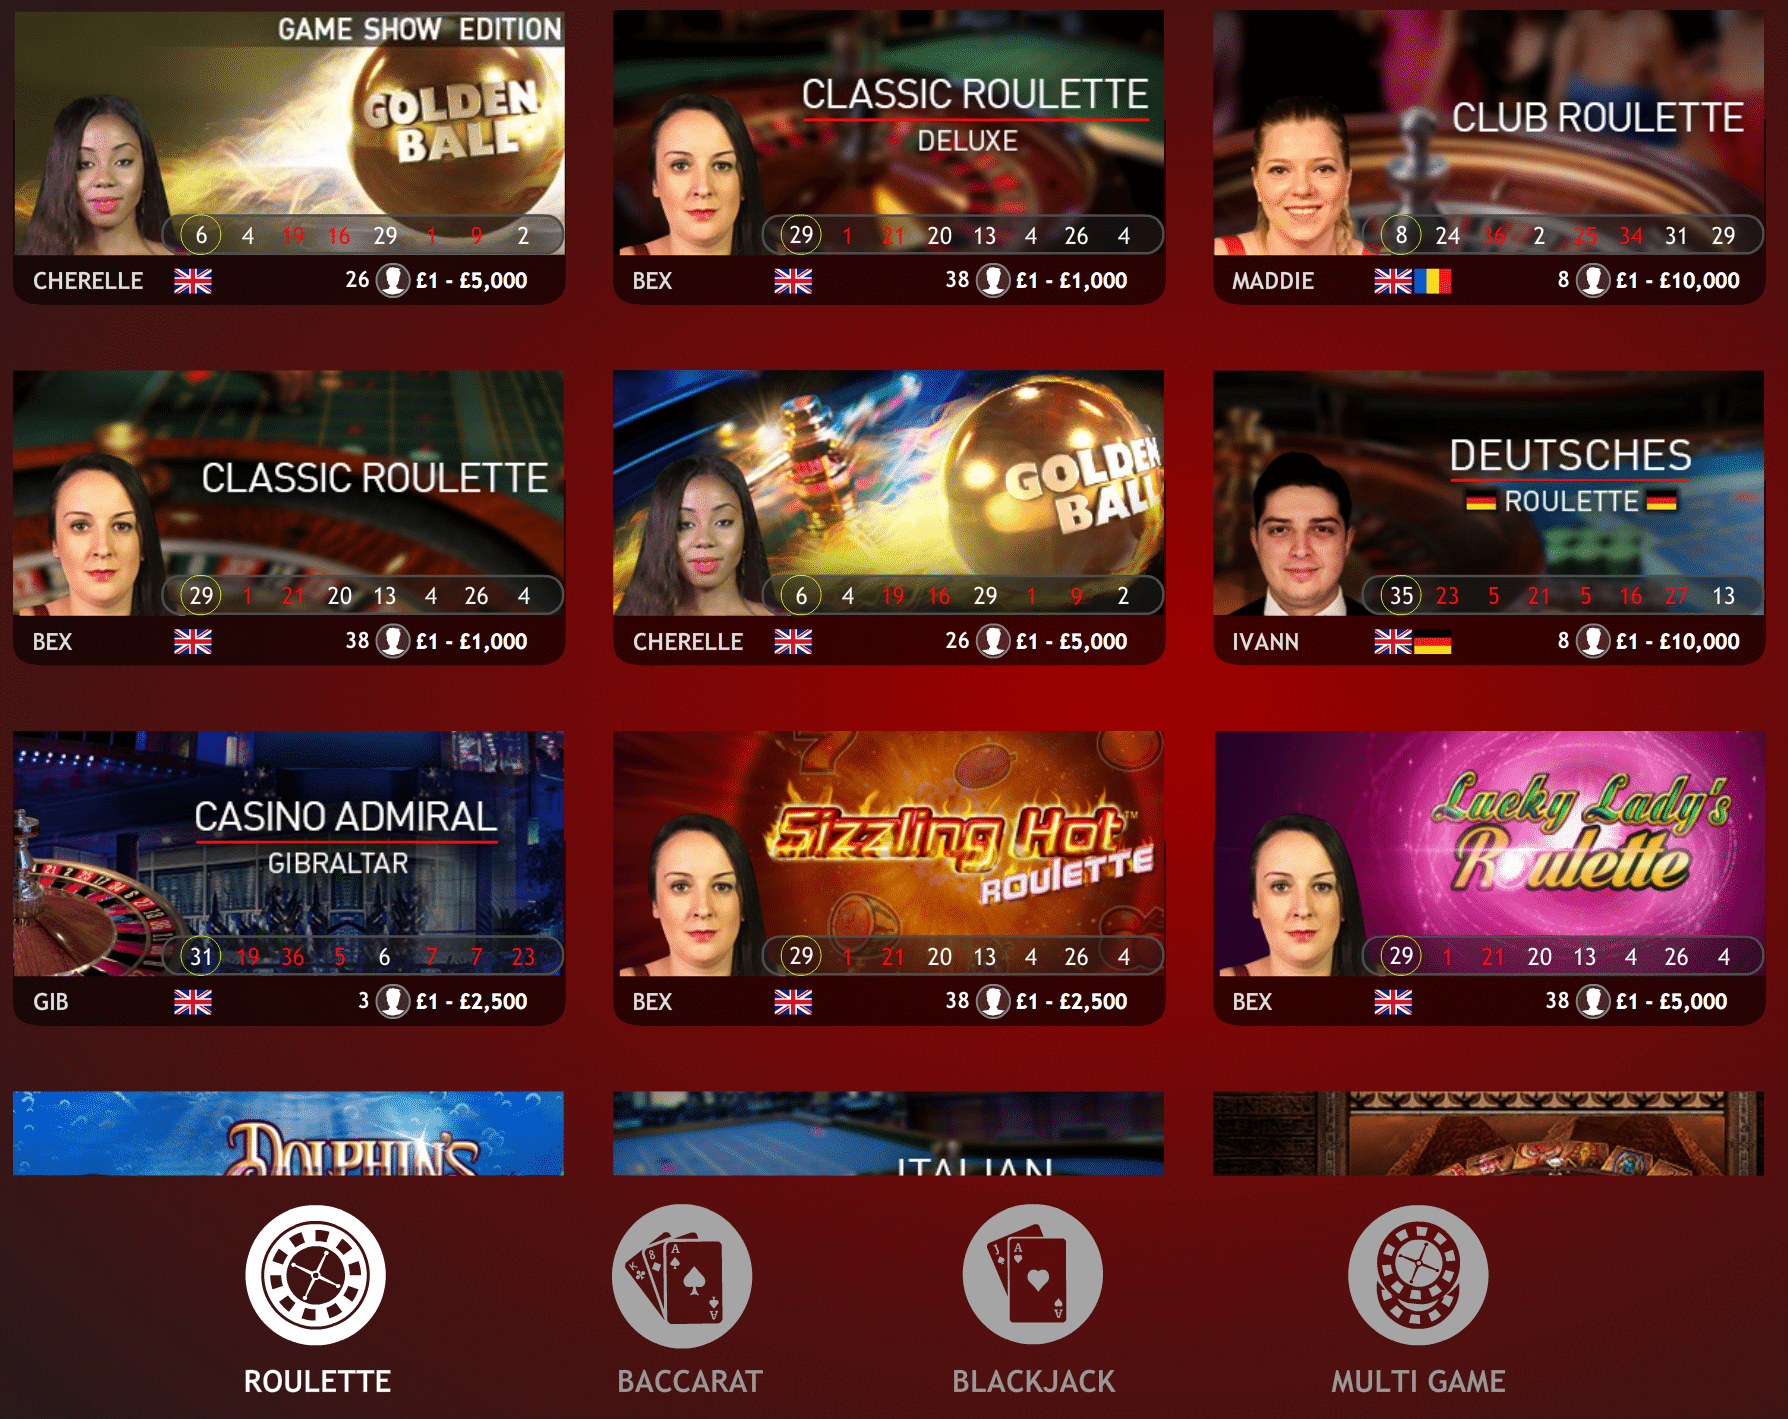 Bonanza Archives - Get Free Spins at the Best UK Online Casino | PlayOJO